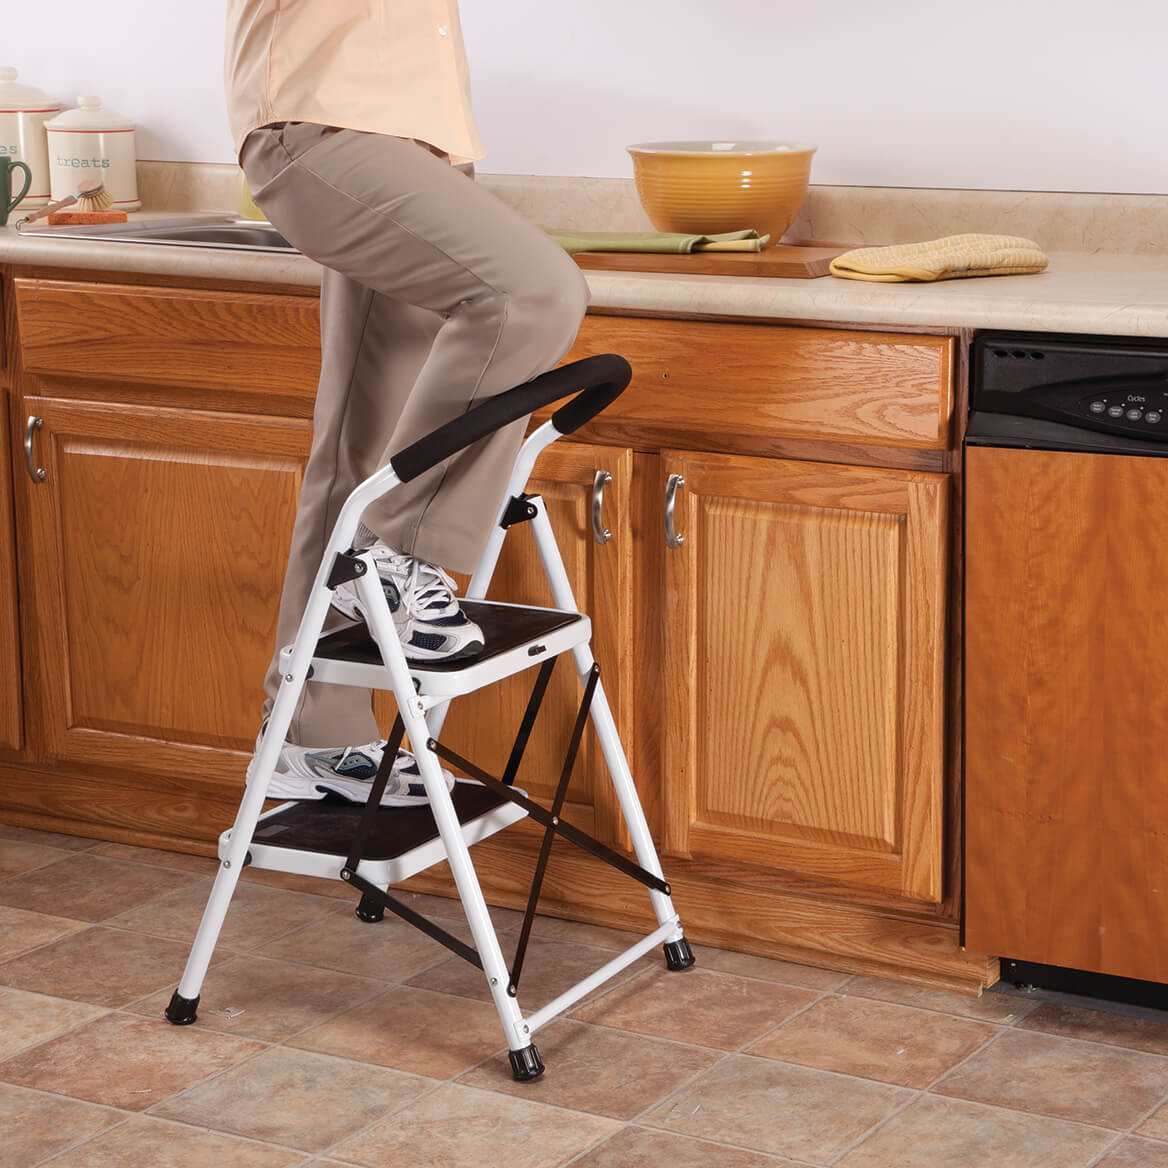 Livingsure 2 Step Ladder Stool Combo With Handgrip Anti